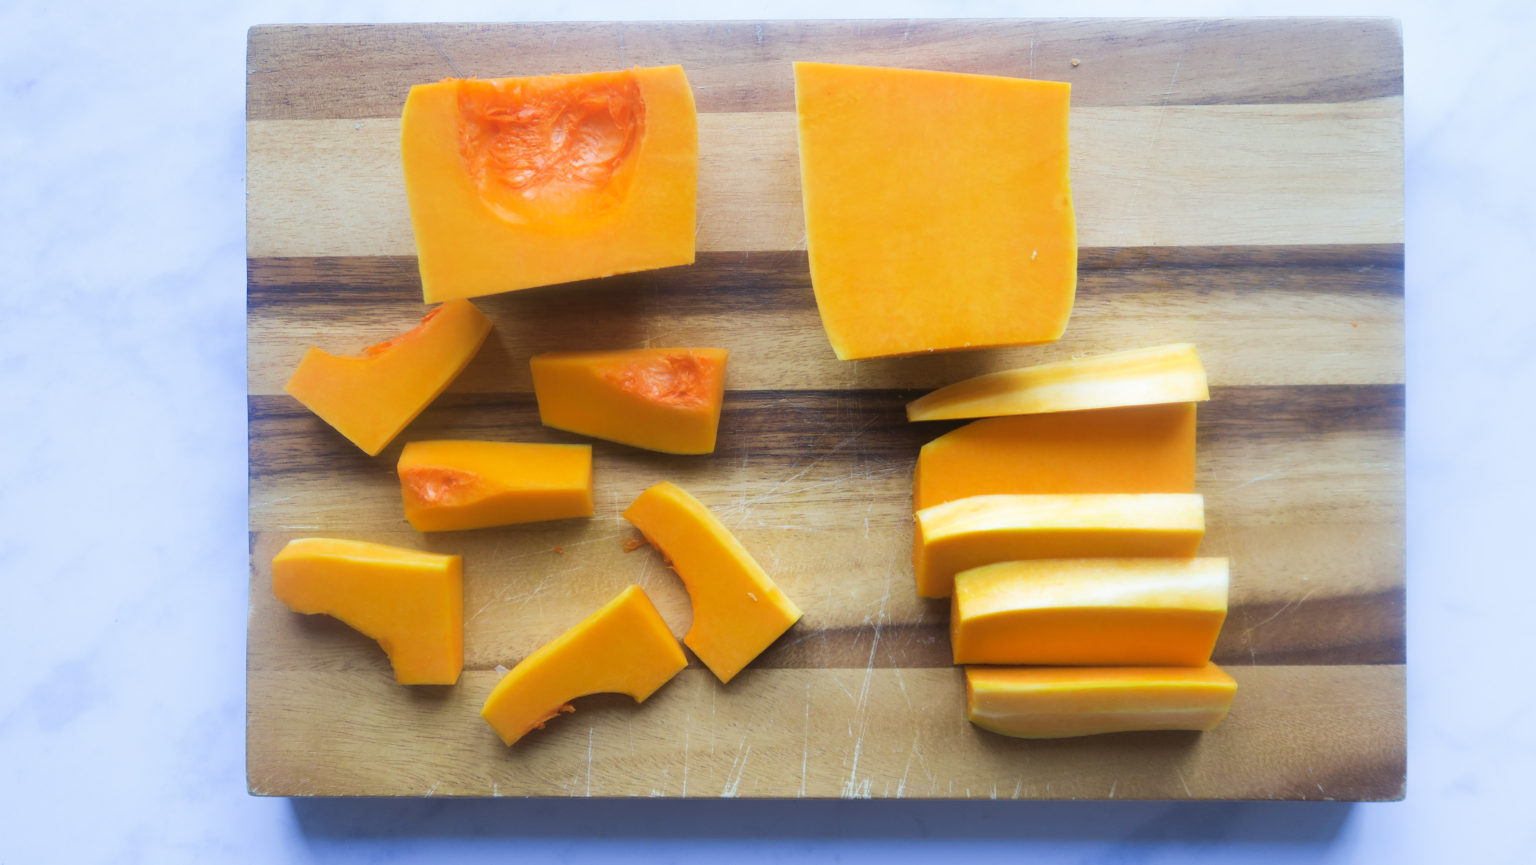 Butternut cut into sections